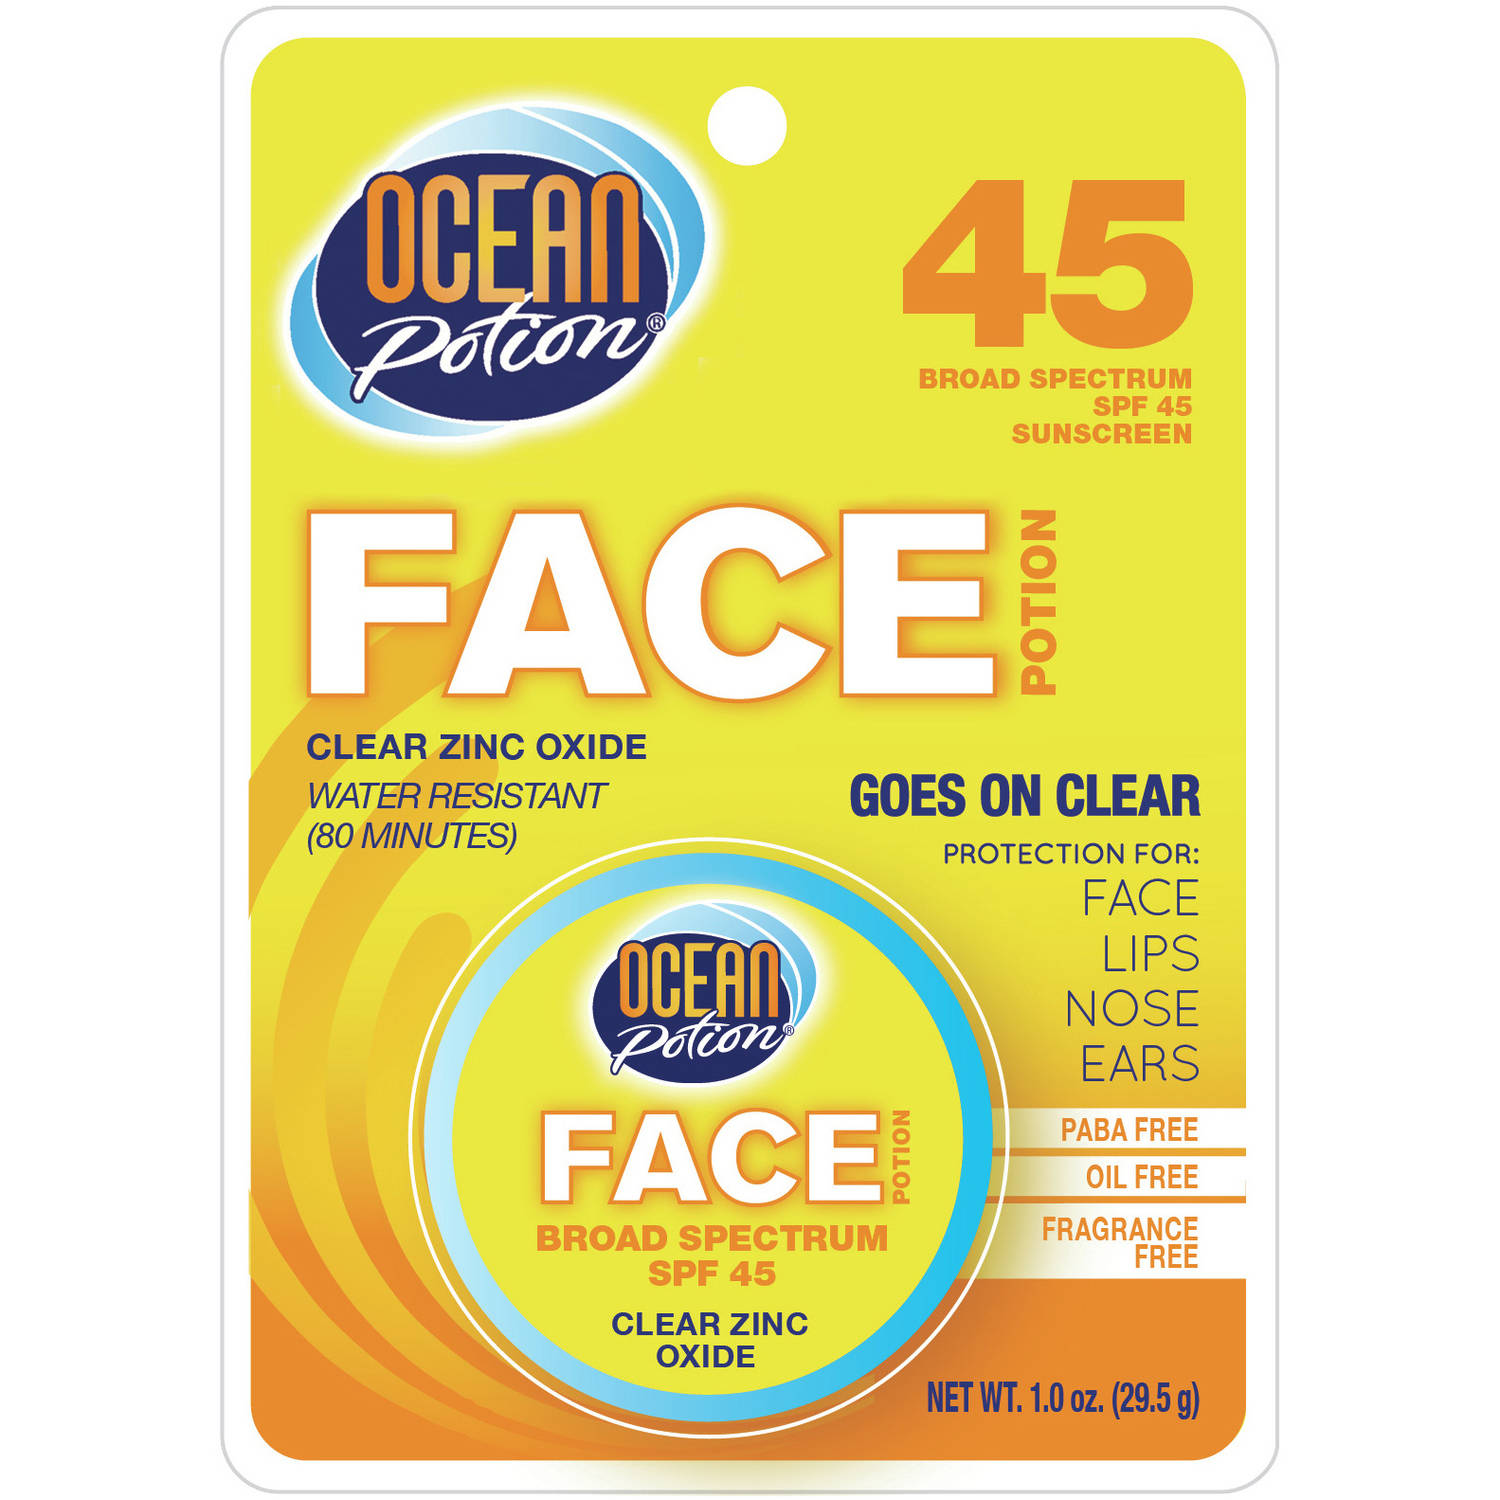 Ocean Potion Clear Zinc Oxide Face Potion SPF 45,1 fl oz